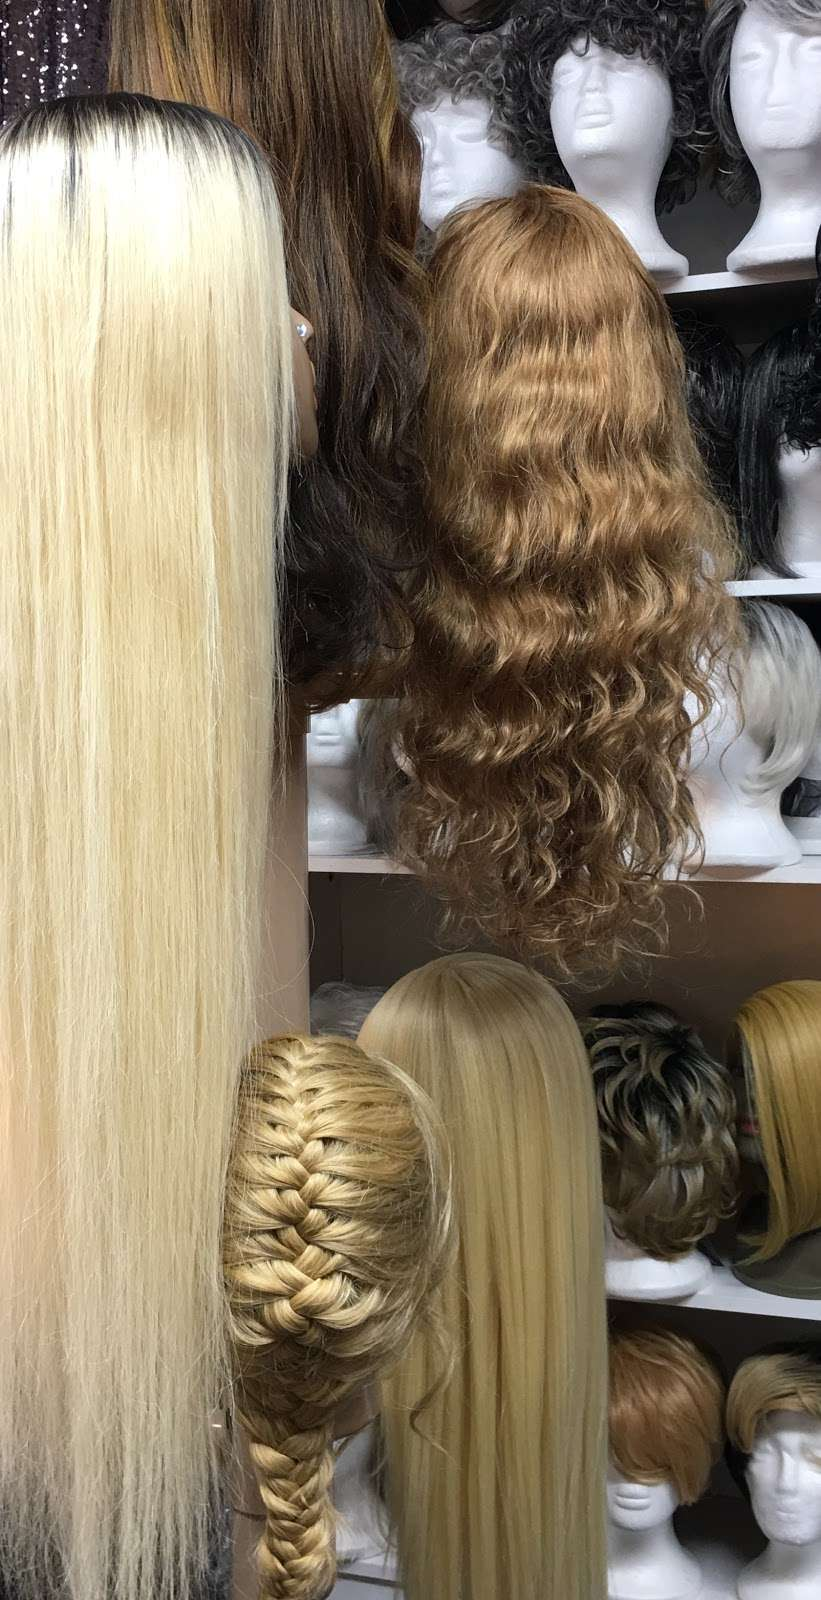 Luxury Wigs Outlet - shoe store  | Photo 8 of 10 | Address: 214 Huyler St, South Hackensack, NJ 07606, USA | Phone: (201) 880-4488